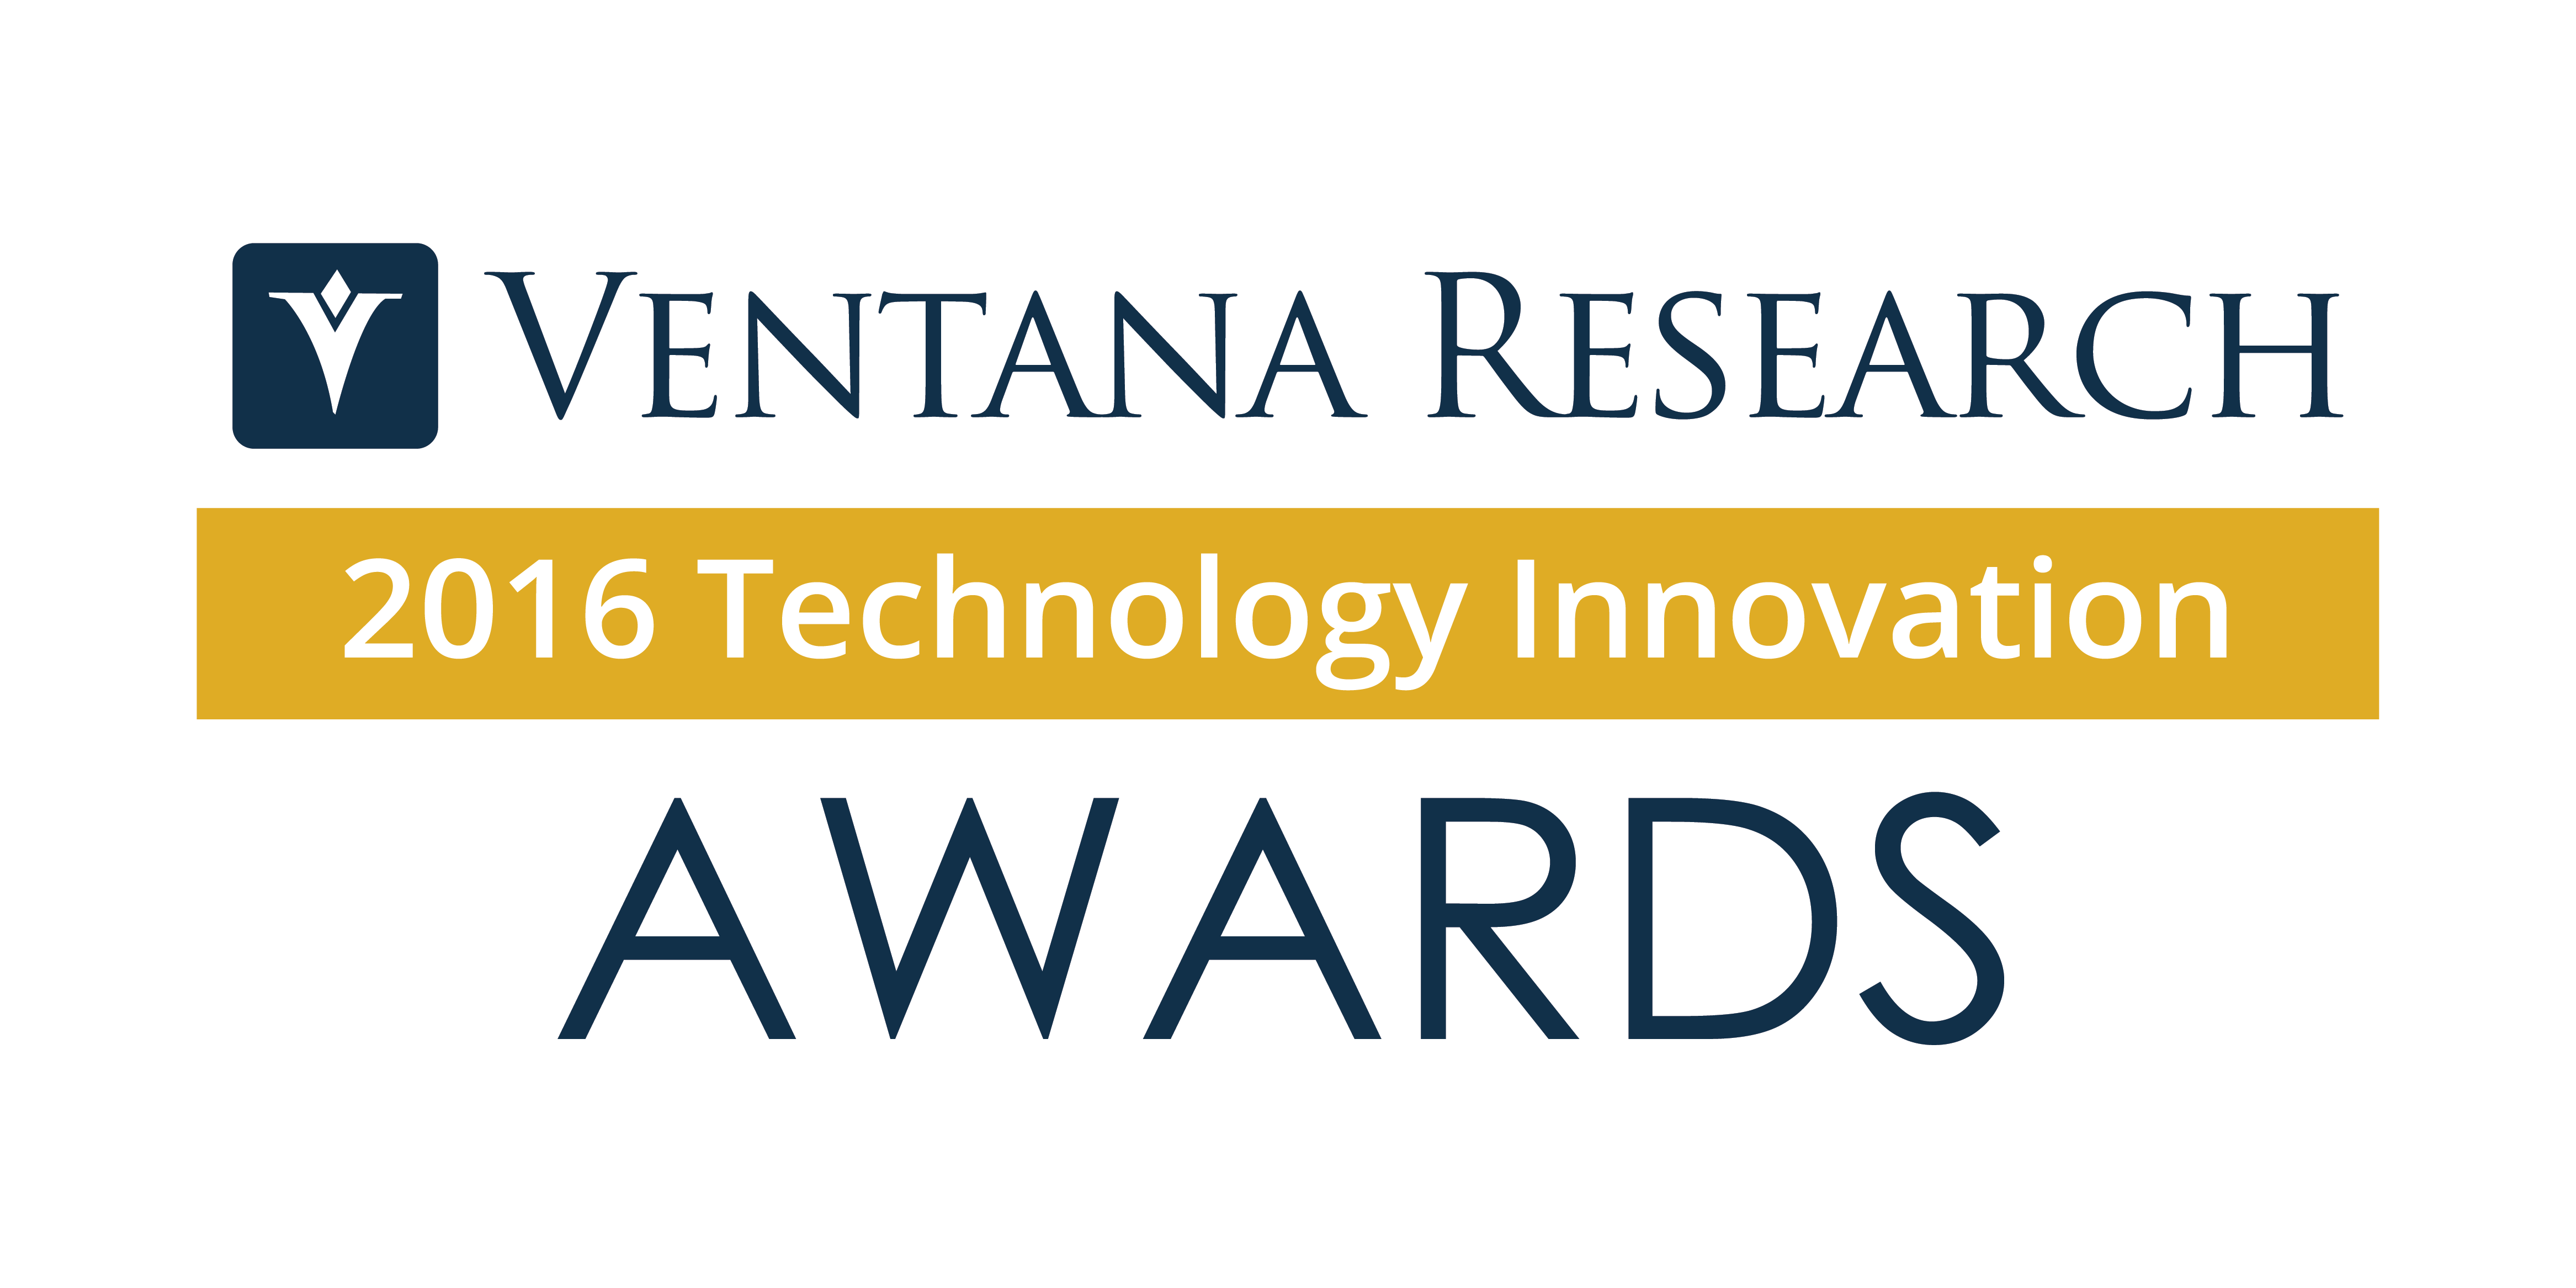 VentanaResearch_TechnologyInnovationAwards_2016_white.png